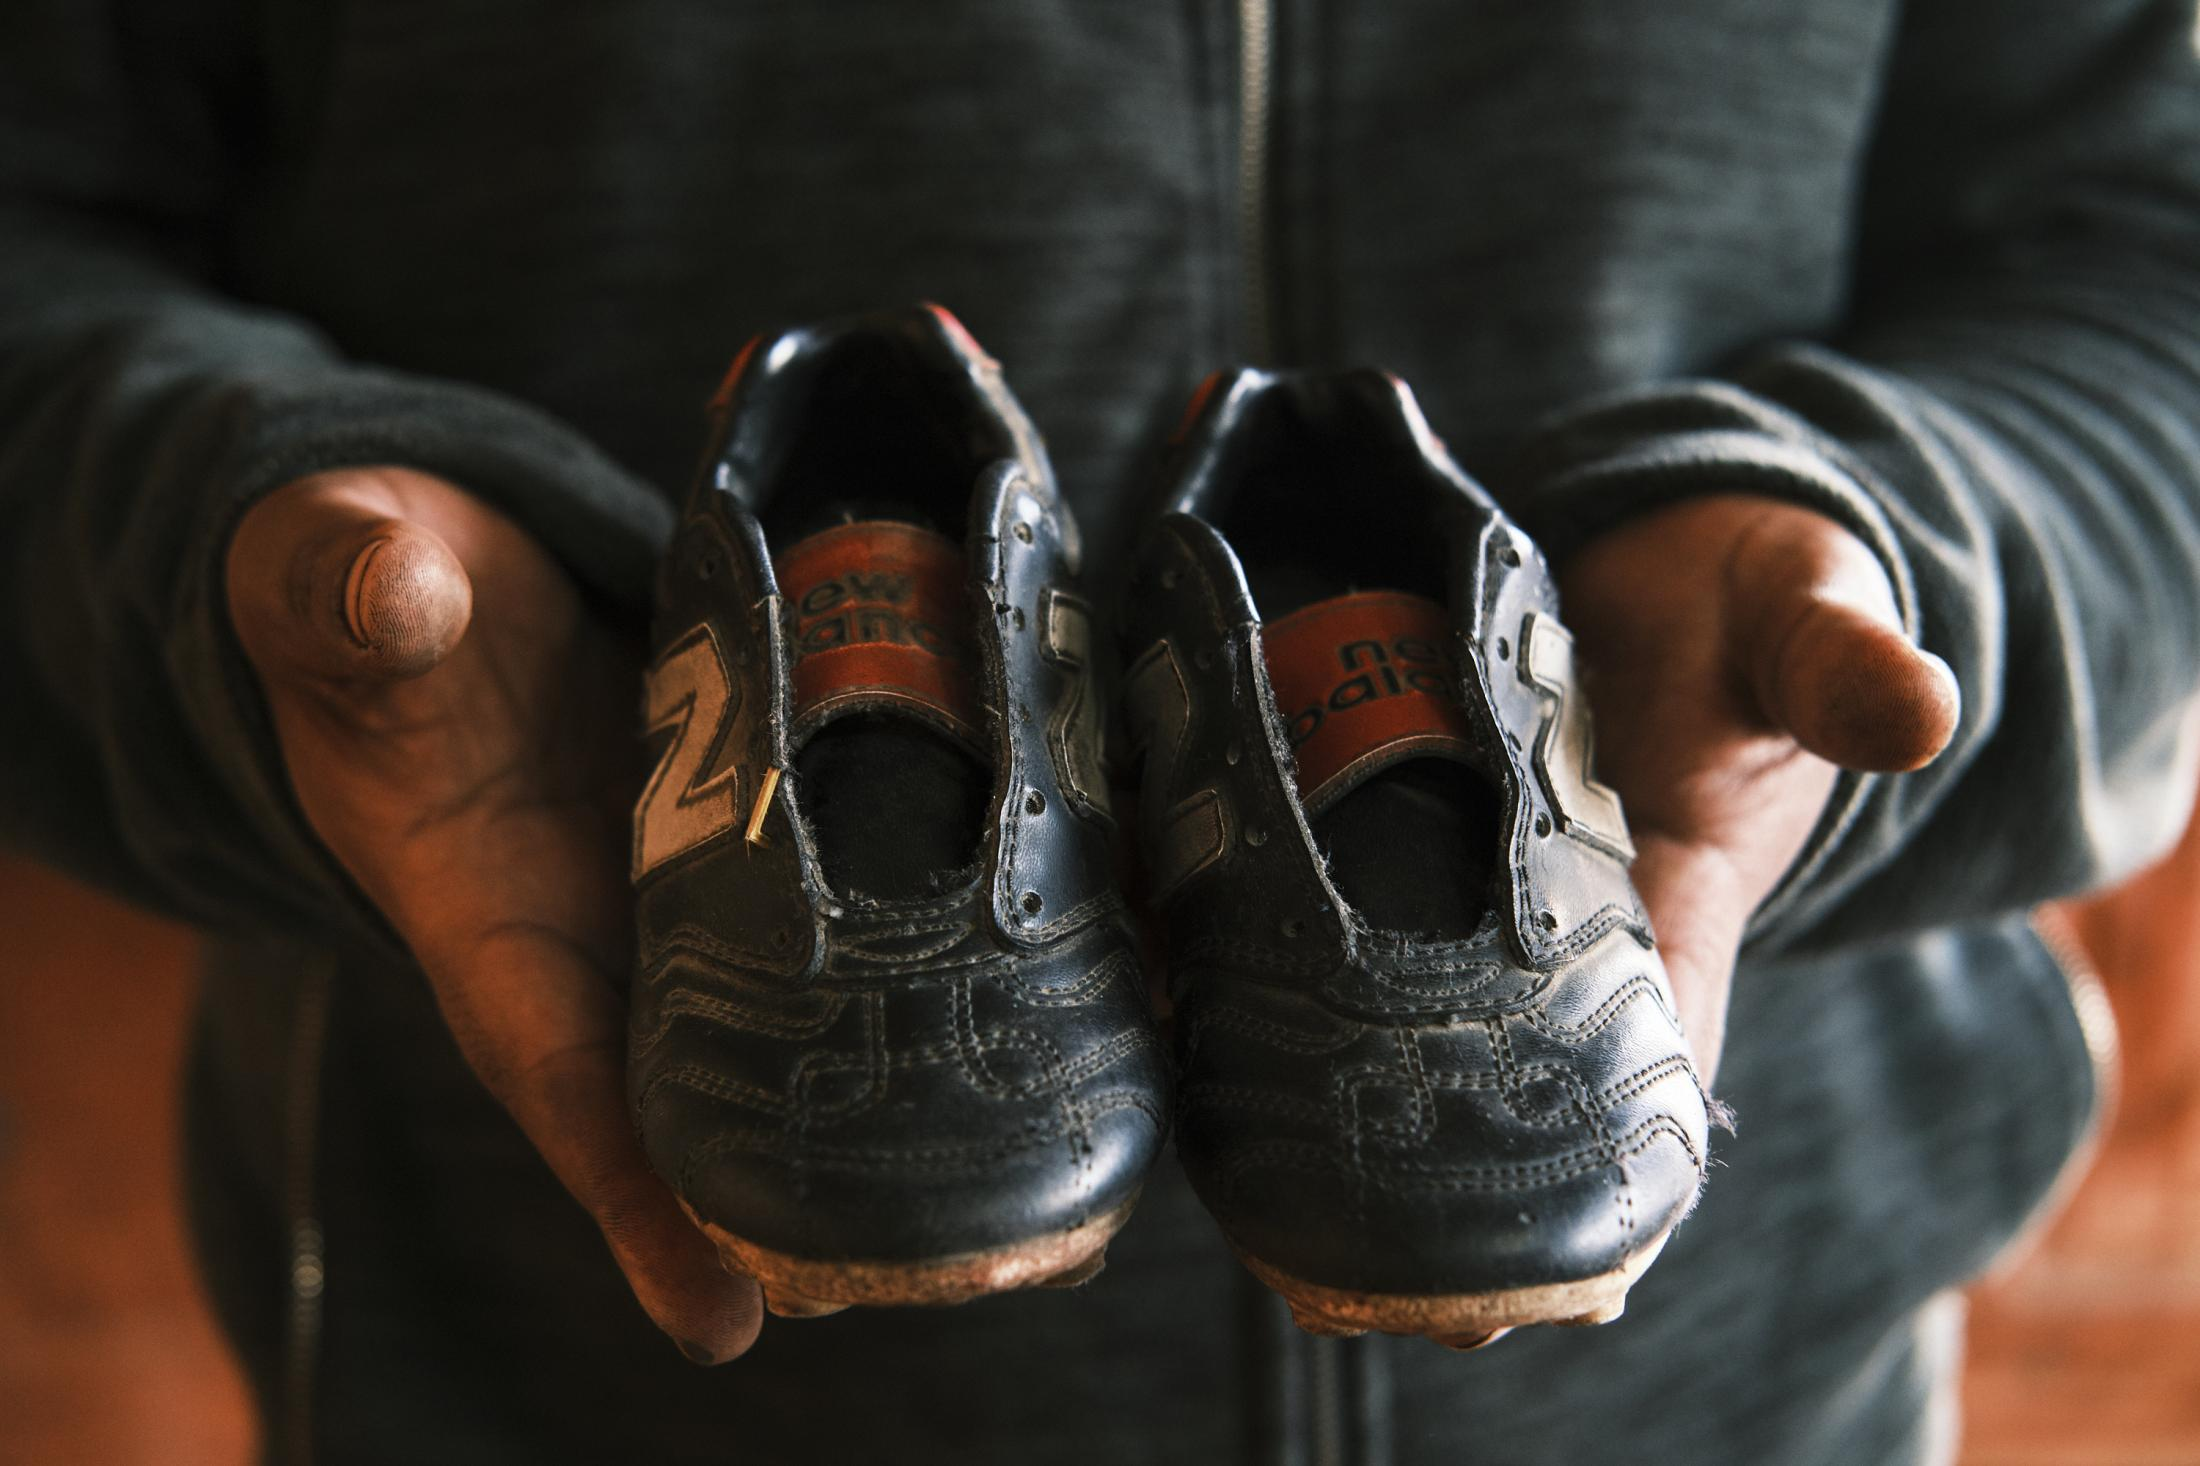 "Coquimbo, Chile, 2020. Victor Briceño, the stepbrother of a teenager killed during a riot, holds a pair of old soccer shoes that were used by his brother when he was a kid. He explains in an interview, ""I bought these shoes for him when he was five, I always kept them at home. Kevin came to live with us when he was a baby and was a brother to me. I raised him. When the army murdered him, I put the shoes in the coffin, but I decided to keep them with us forever at the last minute."" Kevin Gómez, a 24-year-old student, was shot and killed by a member of the military forces deployed during a state of emergency on the first week of riots and lootings in the region of Coquimbo, in the north of Chile. Kevin was shot in the back with his hands in the air when the military assumed he was looting a strip mall with other protesters. The investigation is still ongoing after a year."